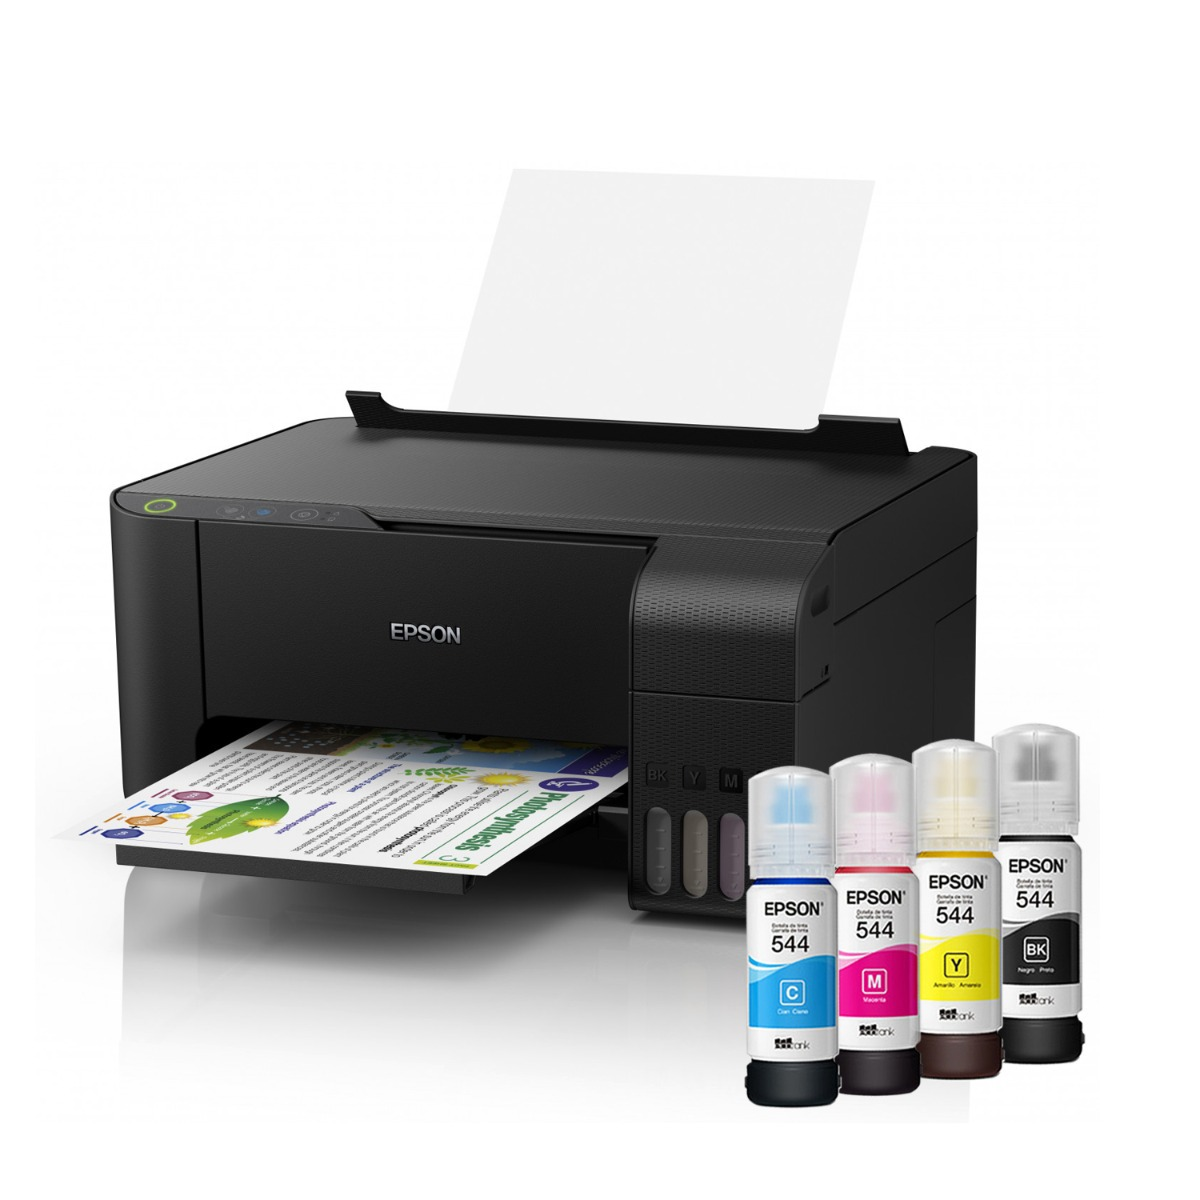 Harga Jual Epson EcoTank L3110 All-in-One Ink Tank Printer